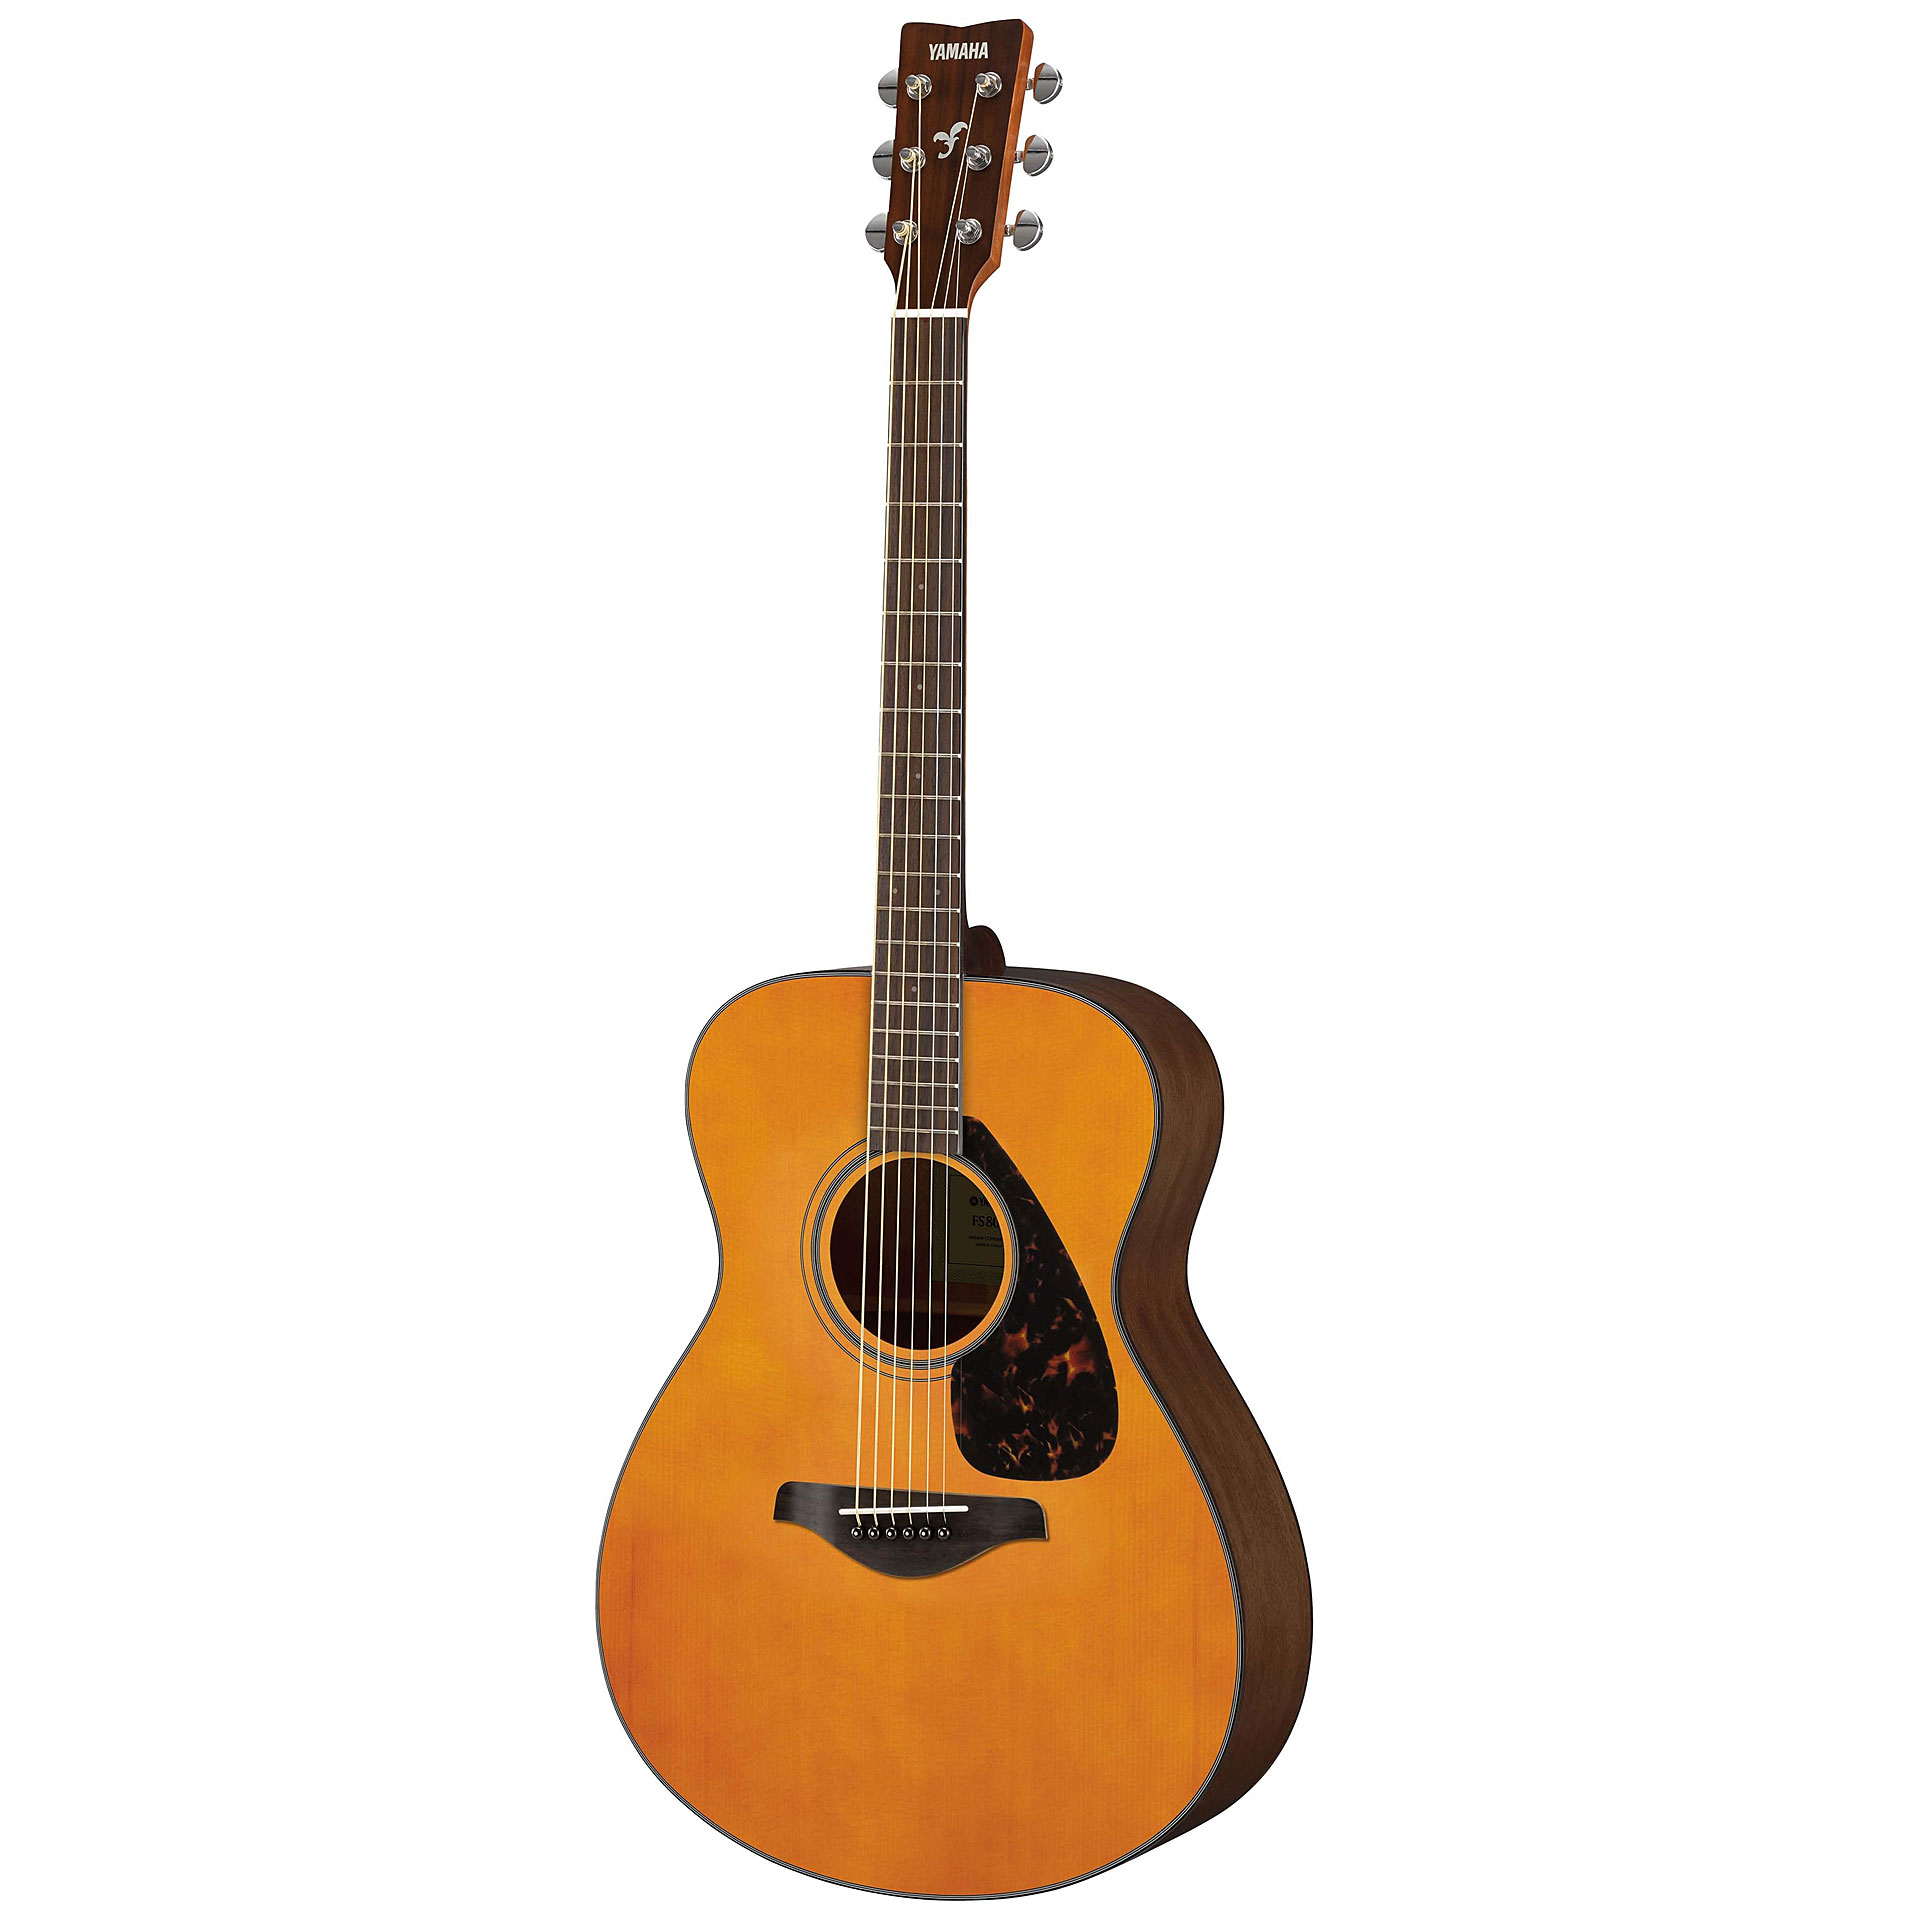 Yamaha fs800t acoustic guitar for New yamaha acoustic guitars